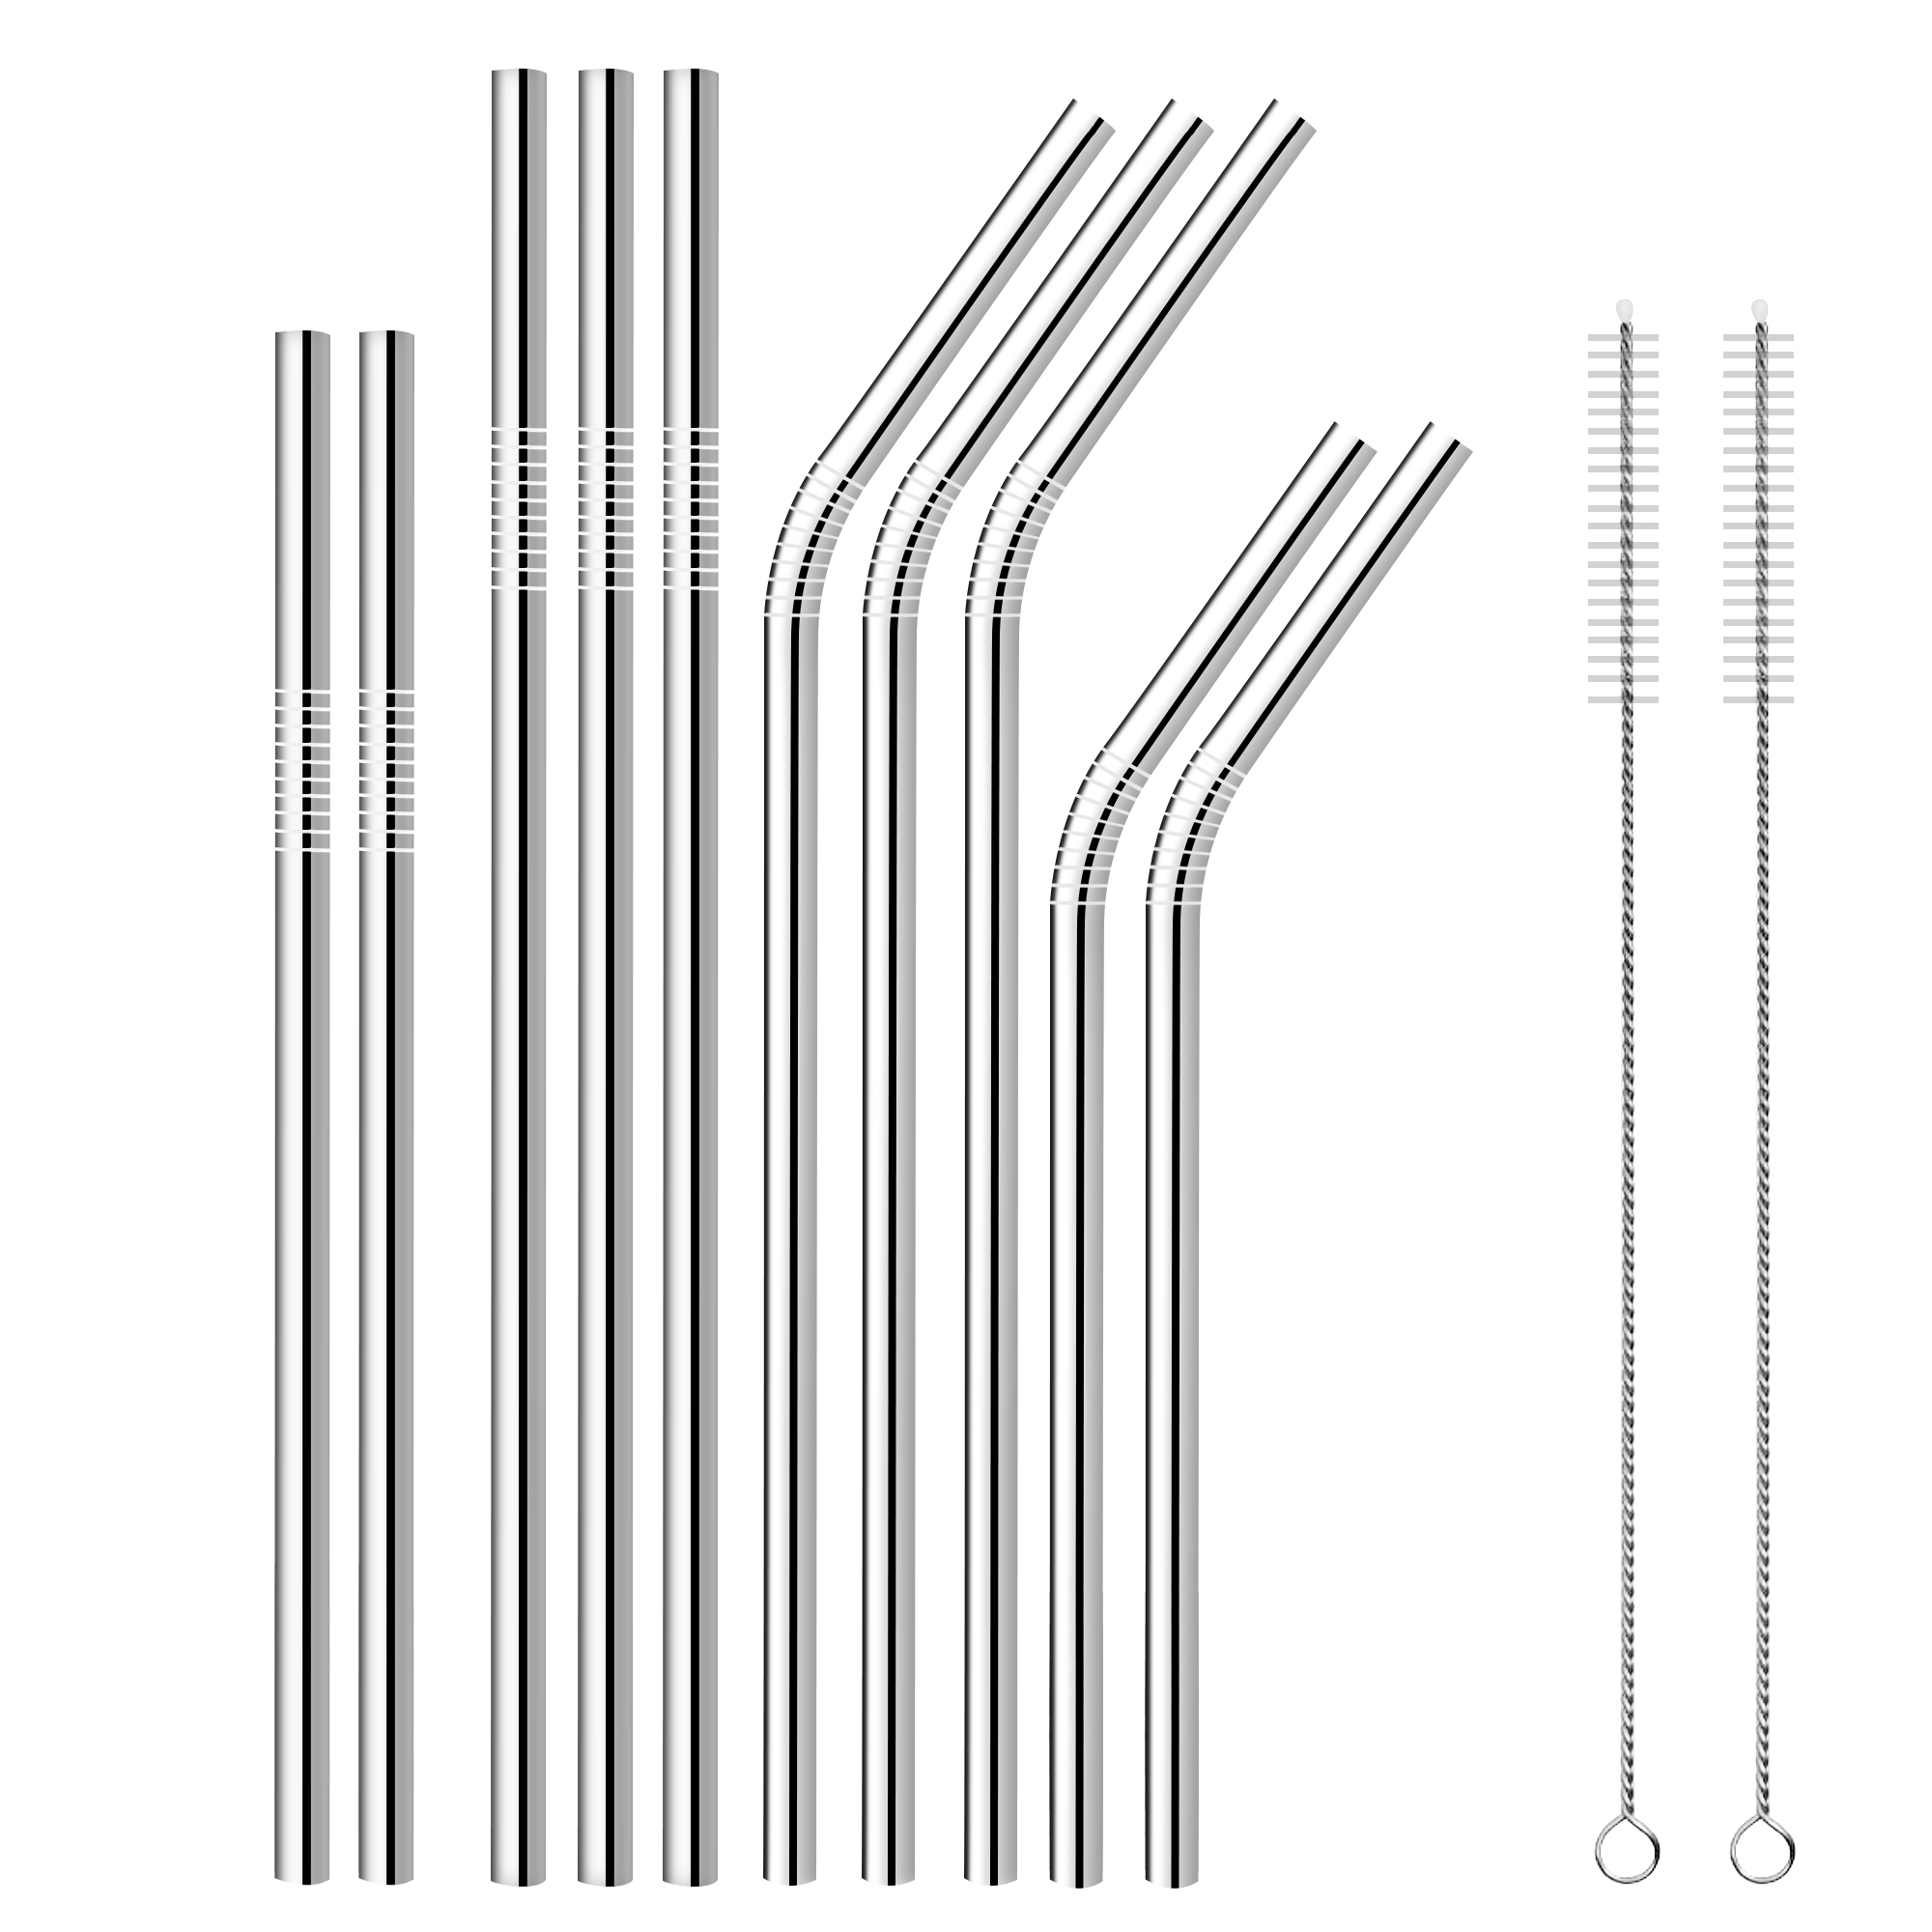 silver stainless steel 304 drinking straw with brush